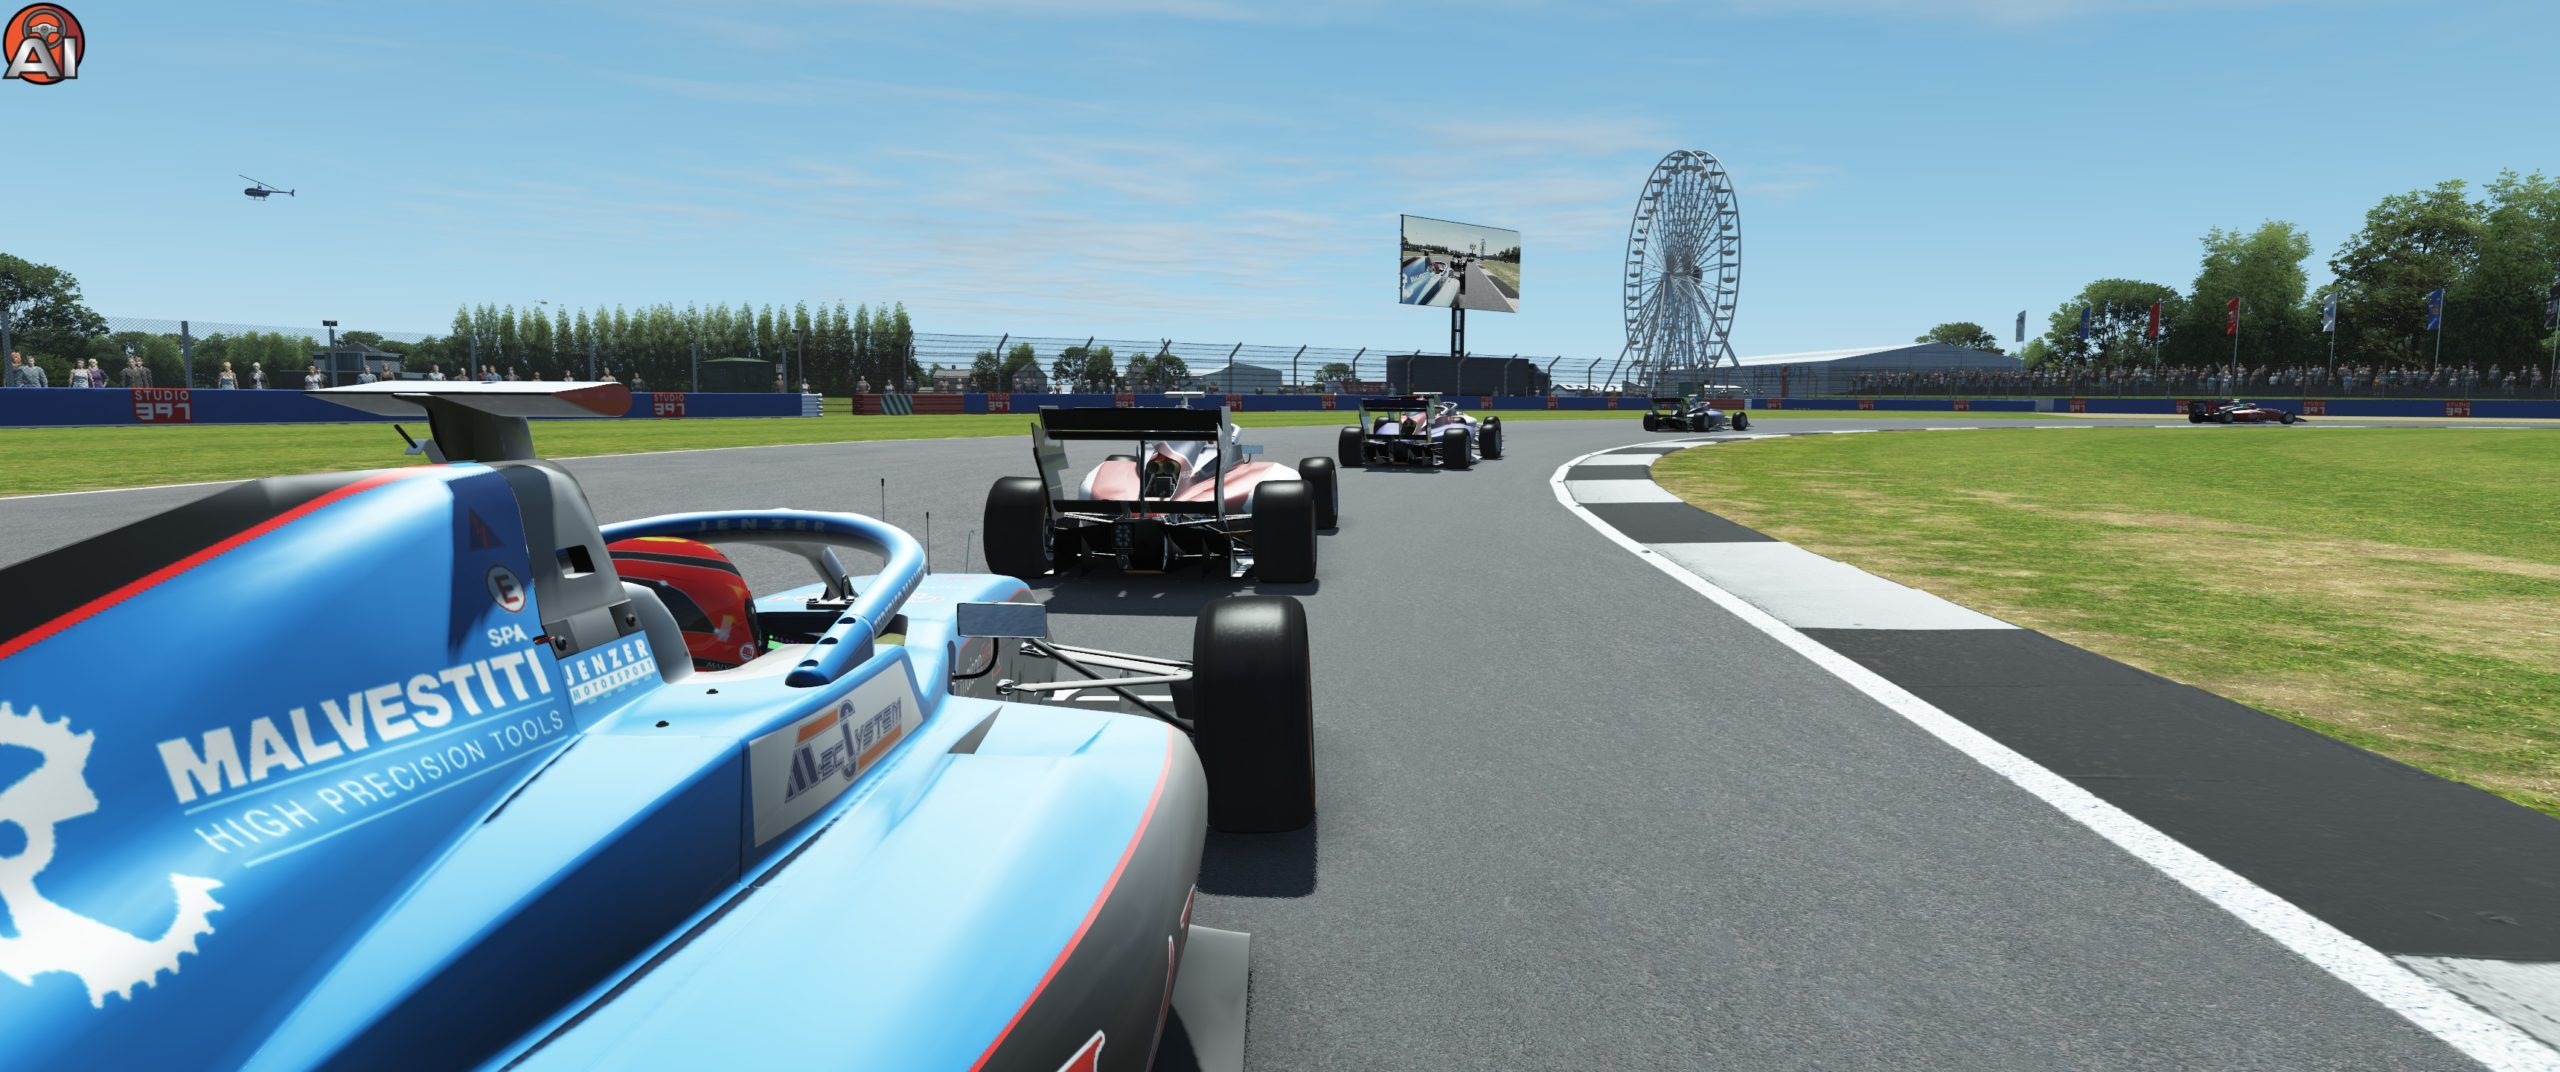 20200629155627_1-scaled SMMG Formula 3 2020 1.0 for rFactor 2 – Released